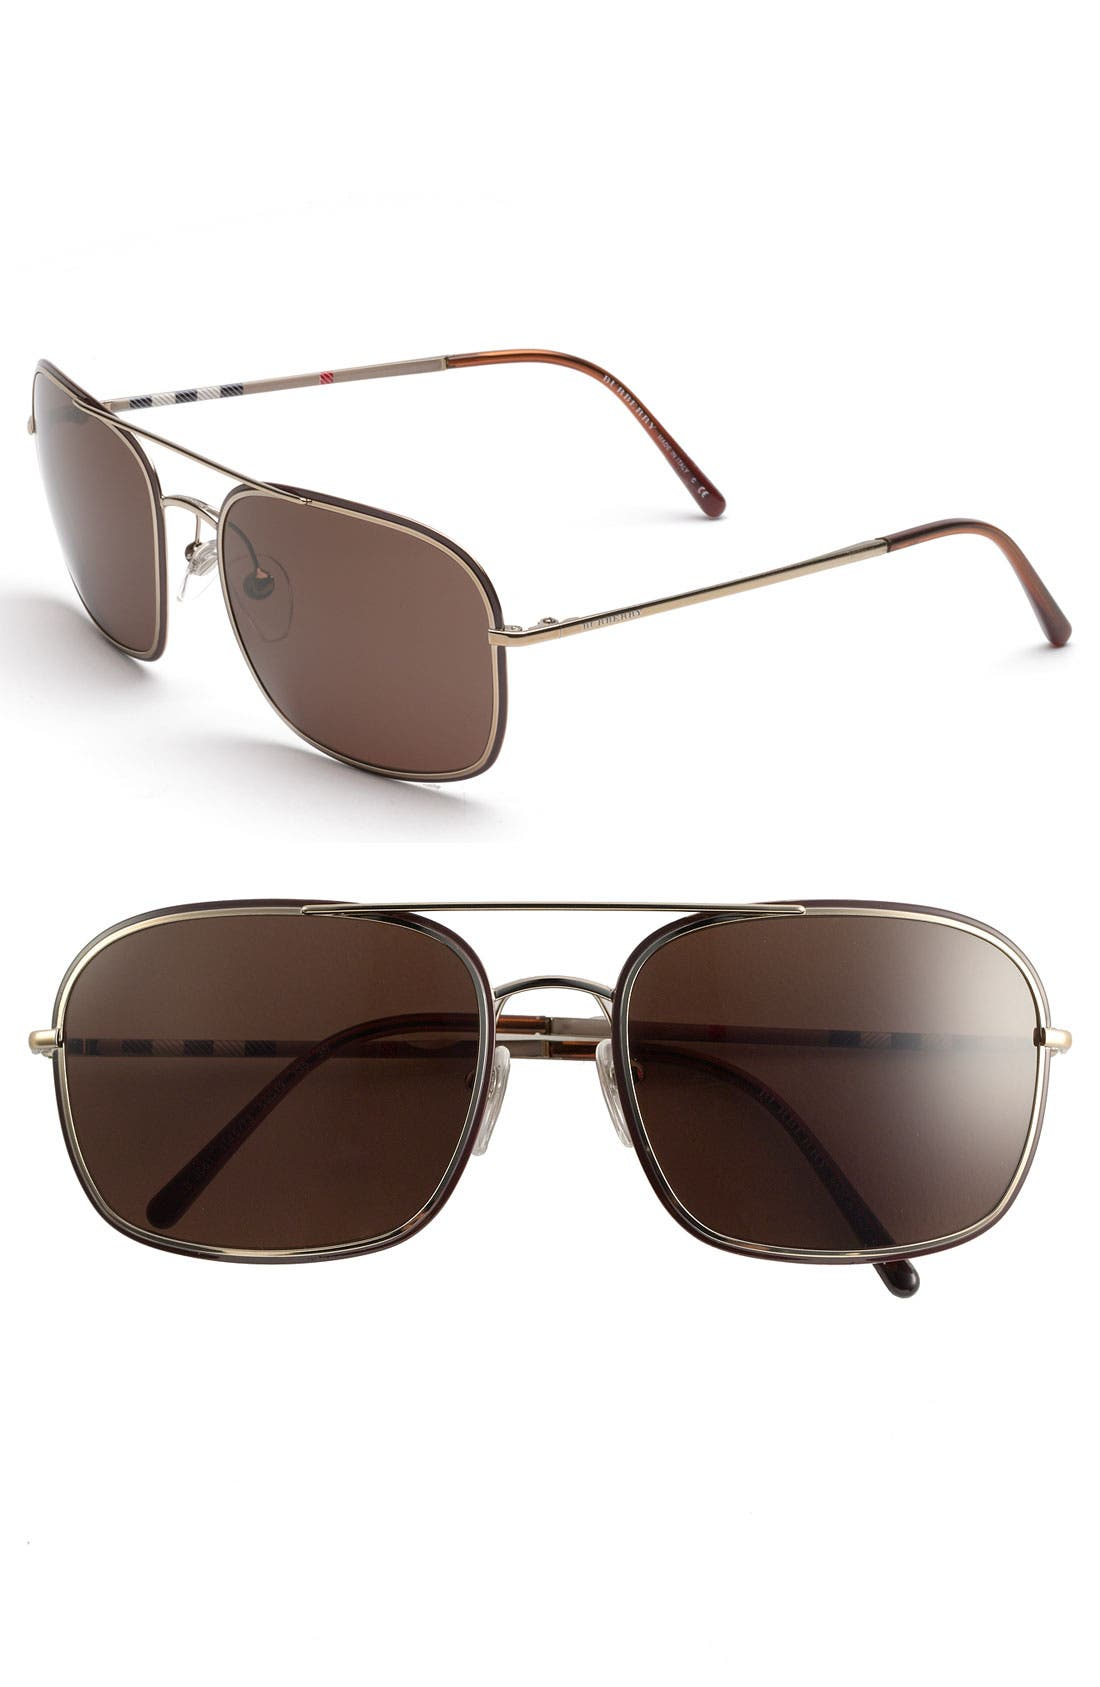 Alternate Image 1 Selected - Burberry Navigator Sunglasses